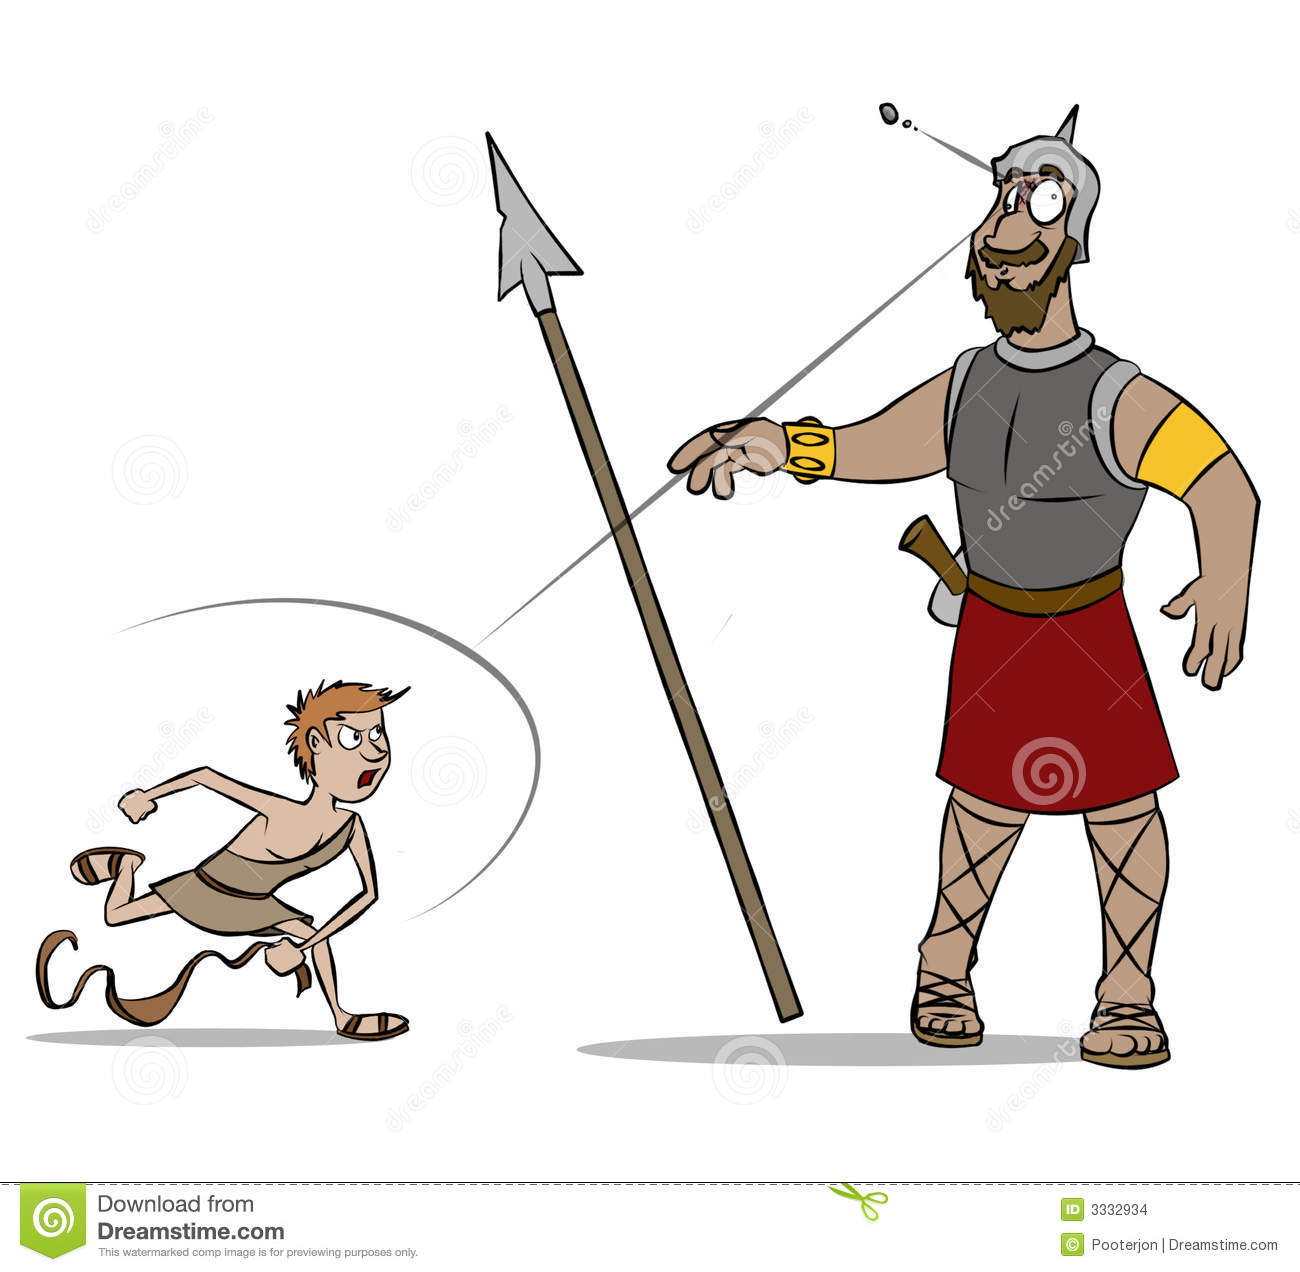 David und goliath clipart jpg freeuse library David And Goliath Royalty Free Stock Photos - Image: 13277468 jpg freeuse library